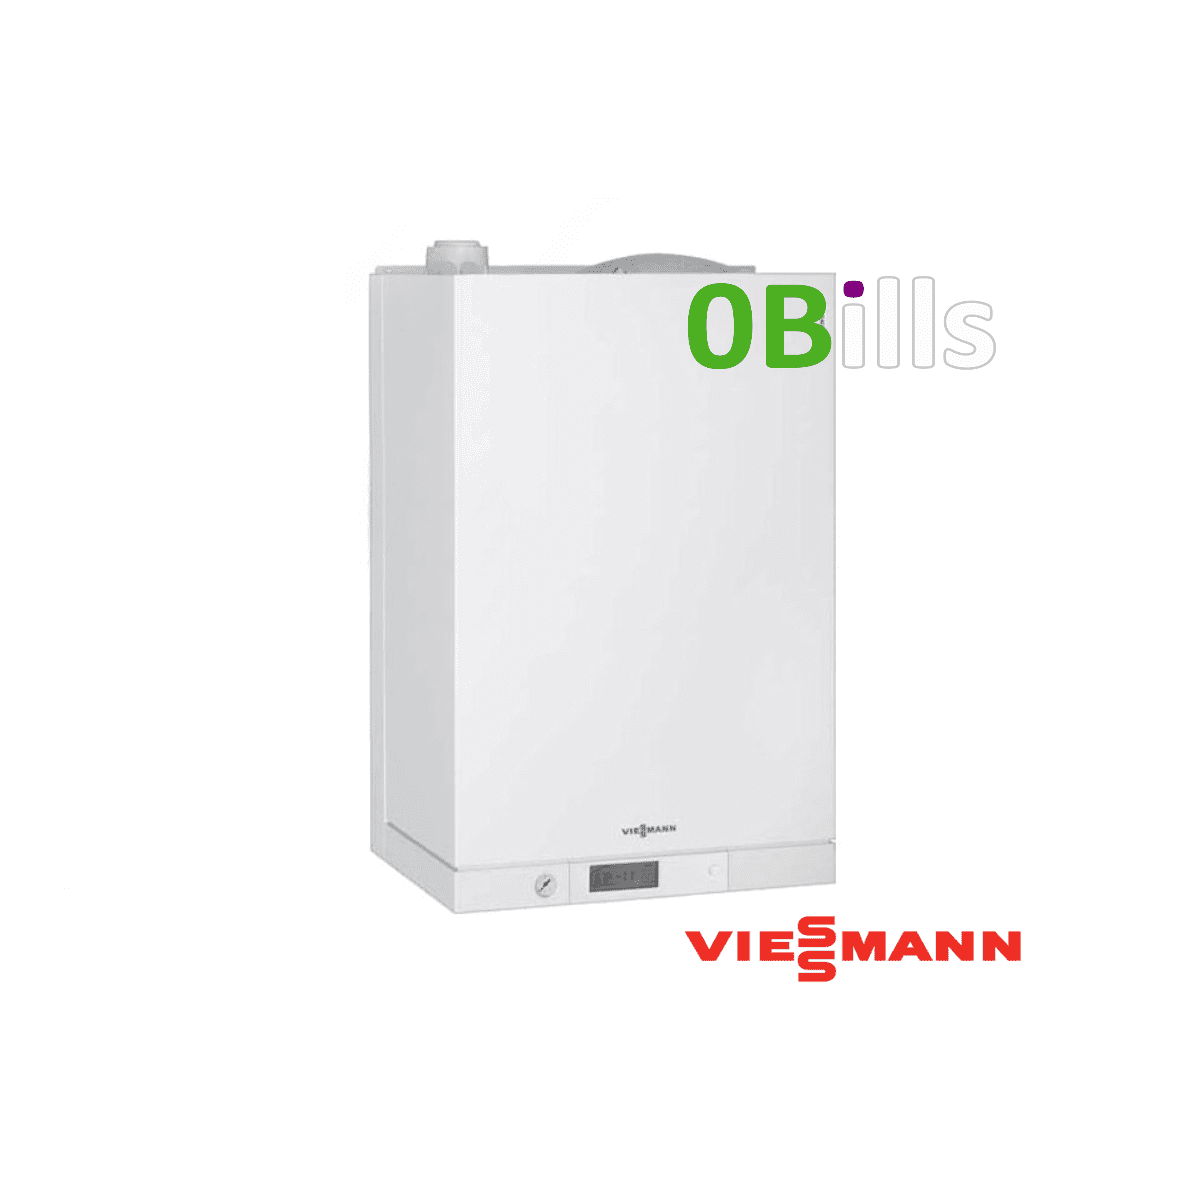 VIESSMANN Vitodens 111-W 35kW Combi Boiler with integrated cylinder for sale